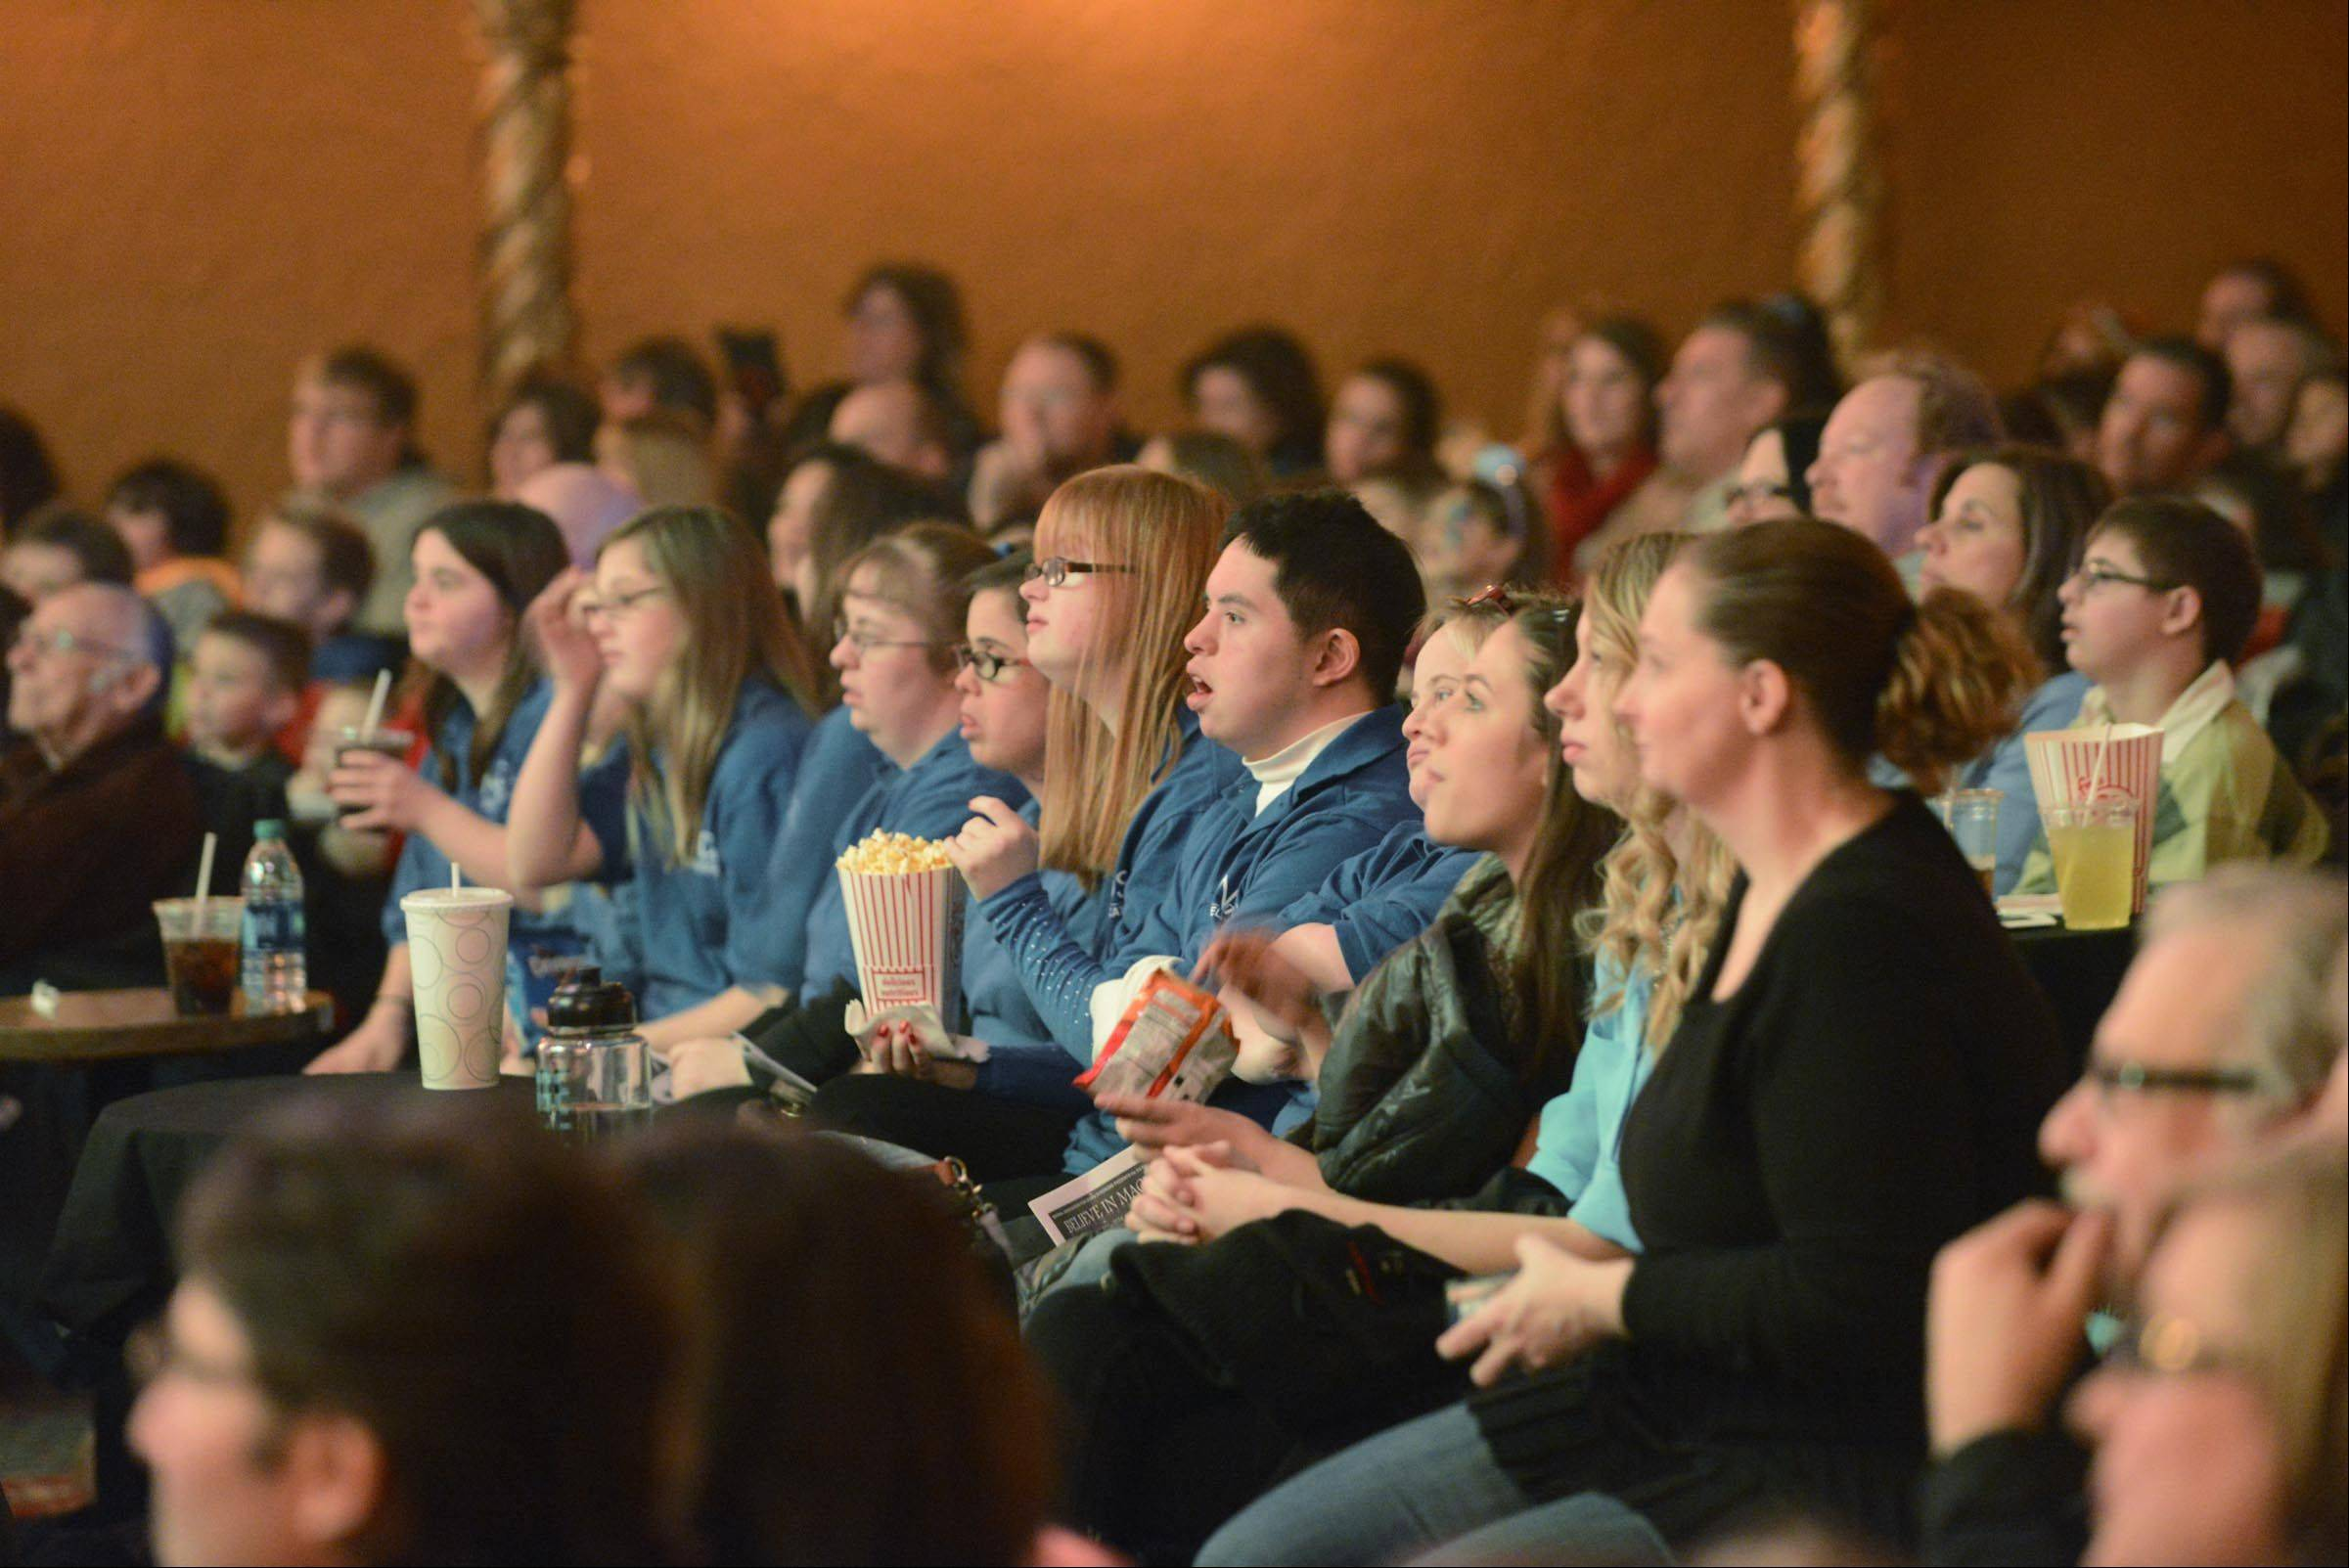 The audience watches as magician Paul Lee performs Sunday at the Arcada Theater in St. Charles. He was hosting the third annual Believe in Magic show, sponsored by the National Association for Down Syndrome.